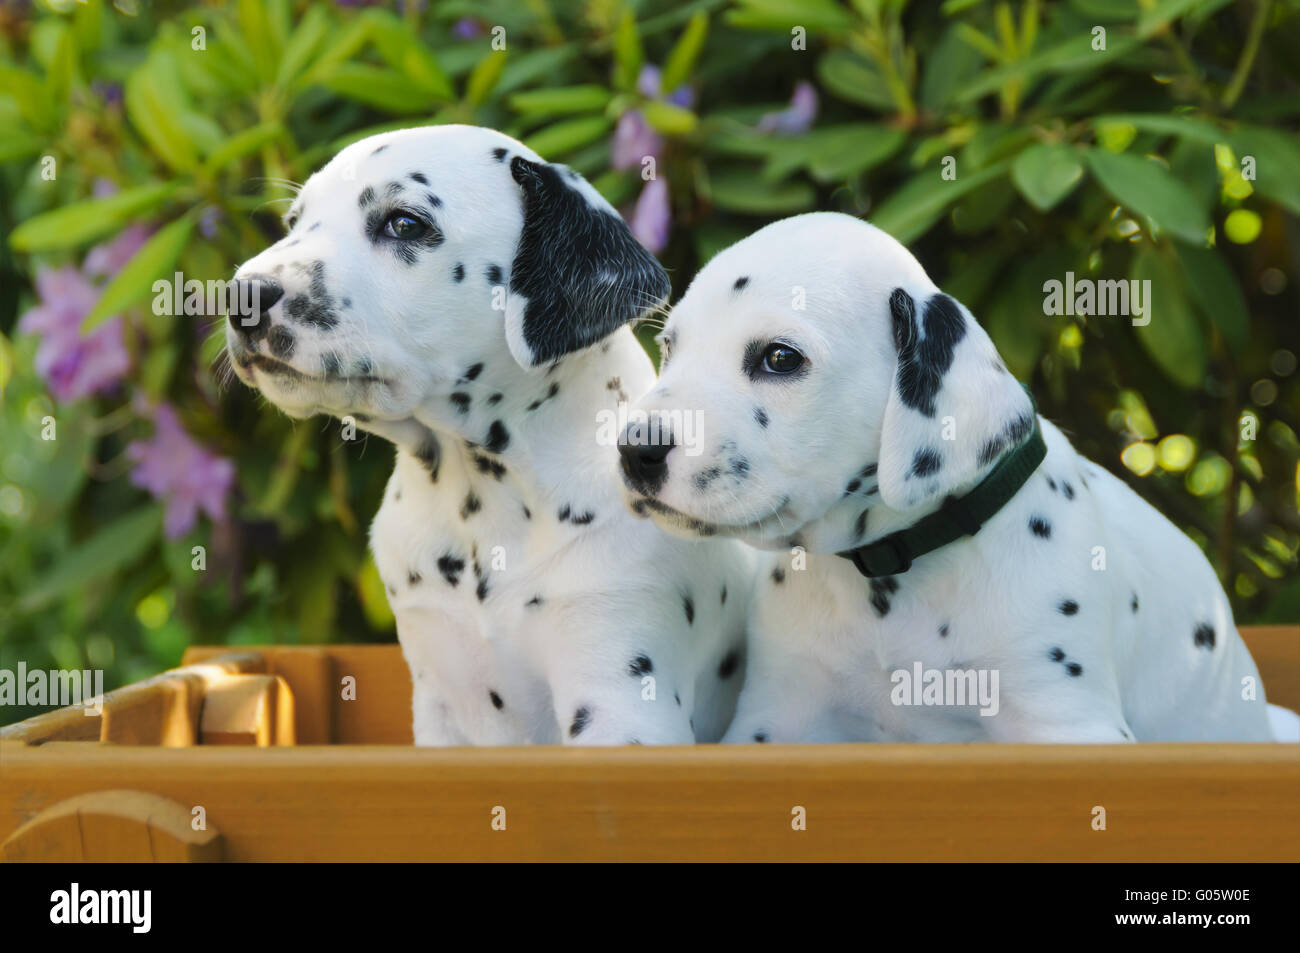 Two Dalmatian puppies, five weeks old side by side - Stock Image